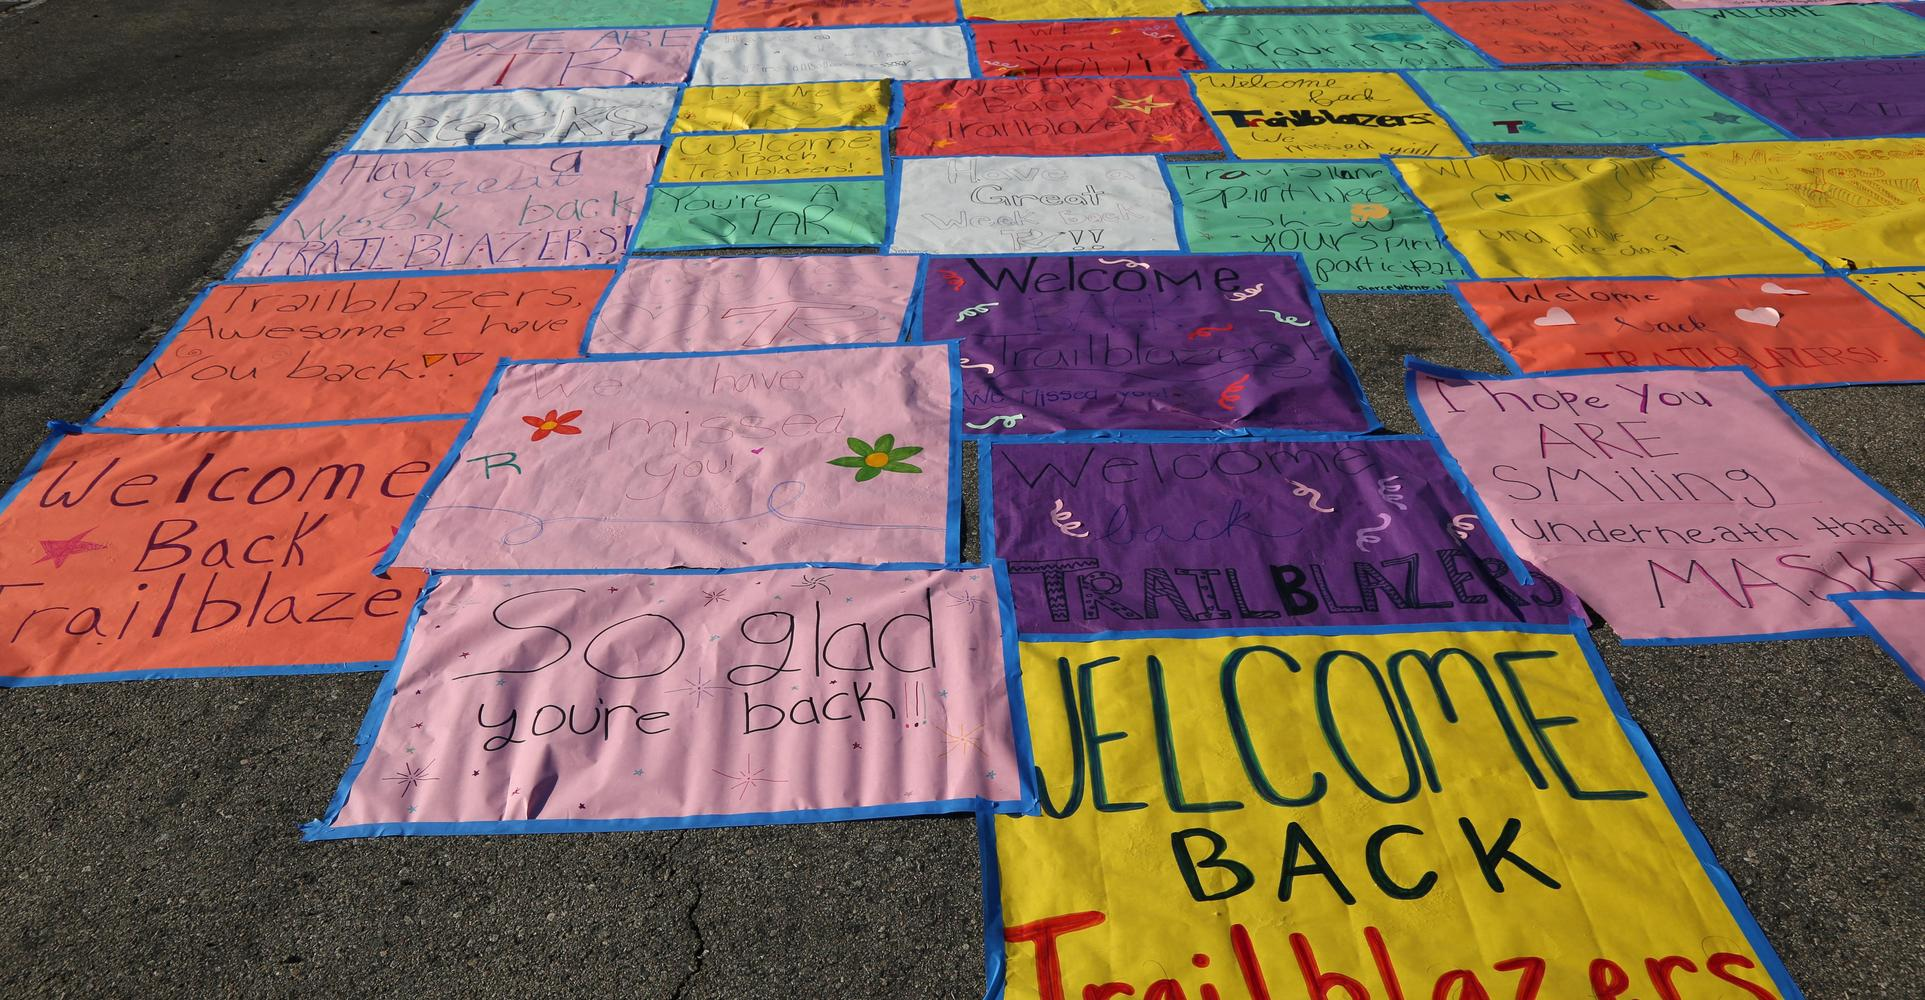 Welcome back signs were a large part of increasing campus morale.